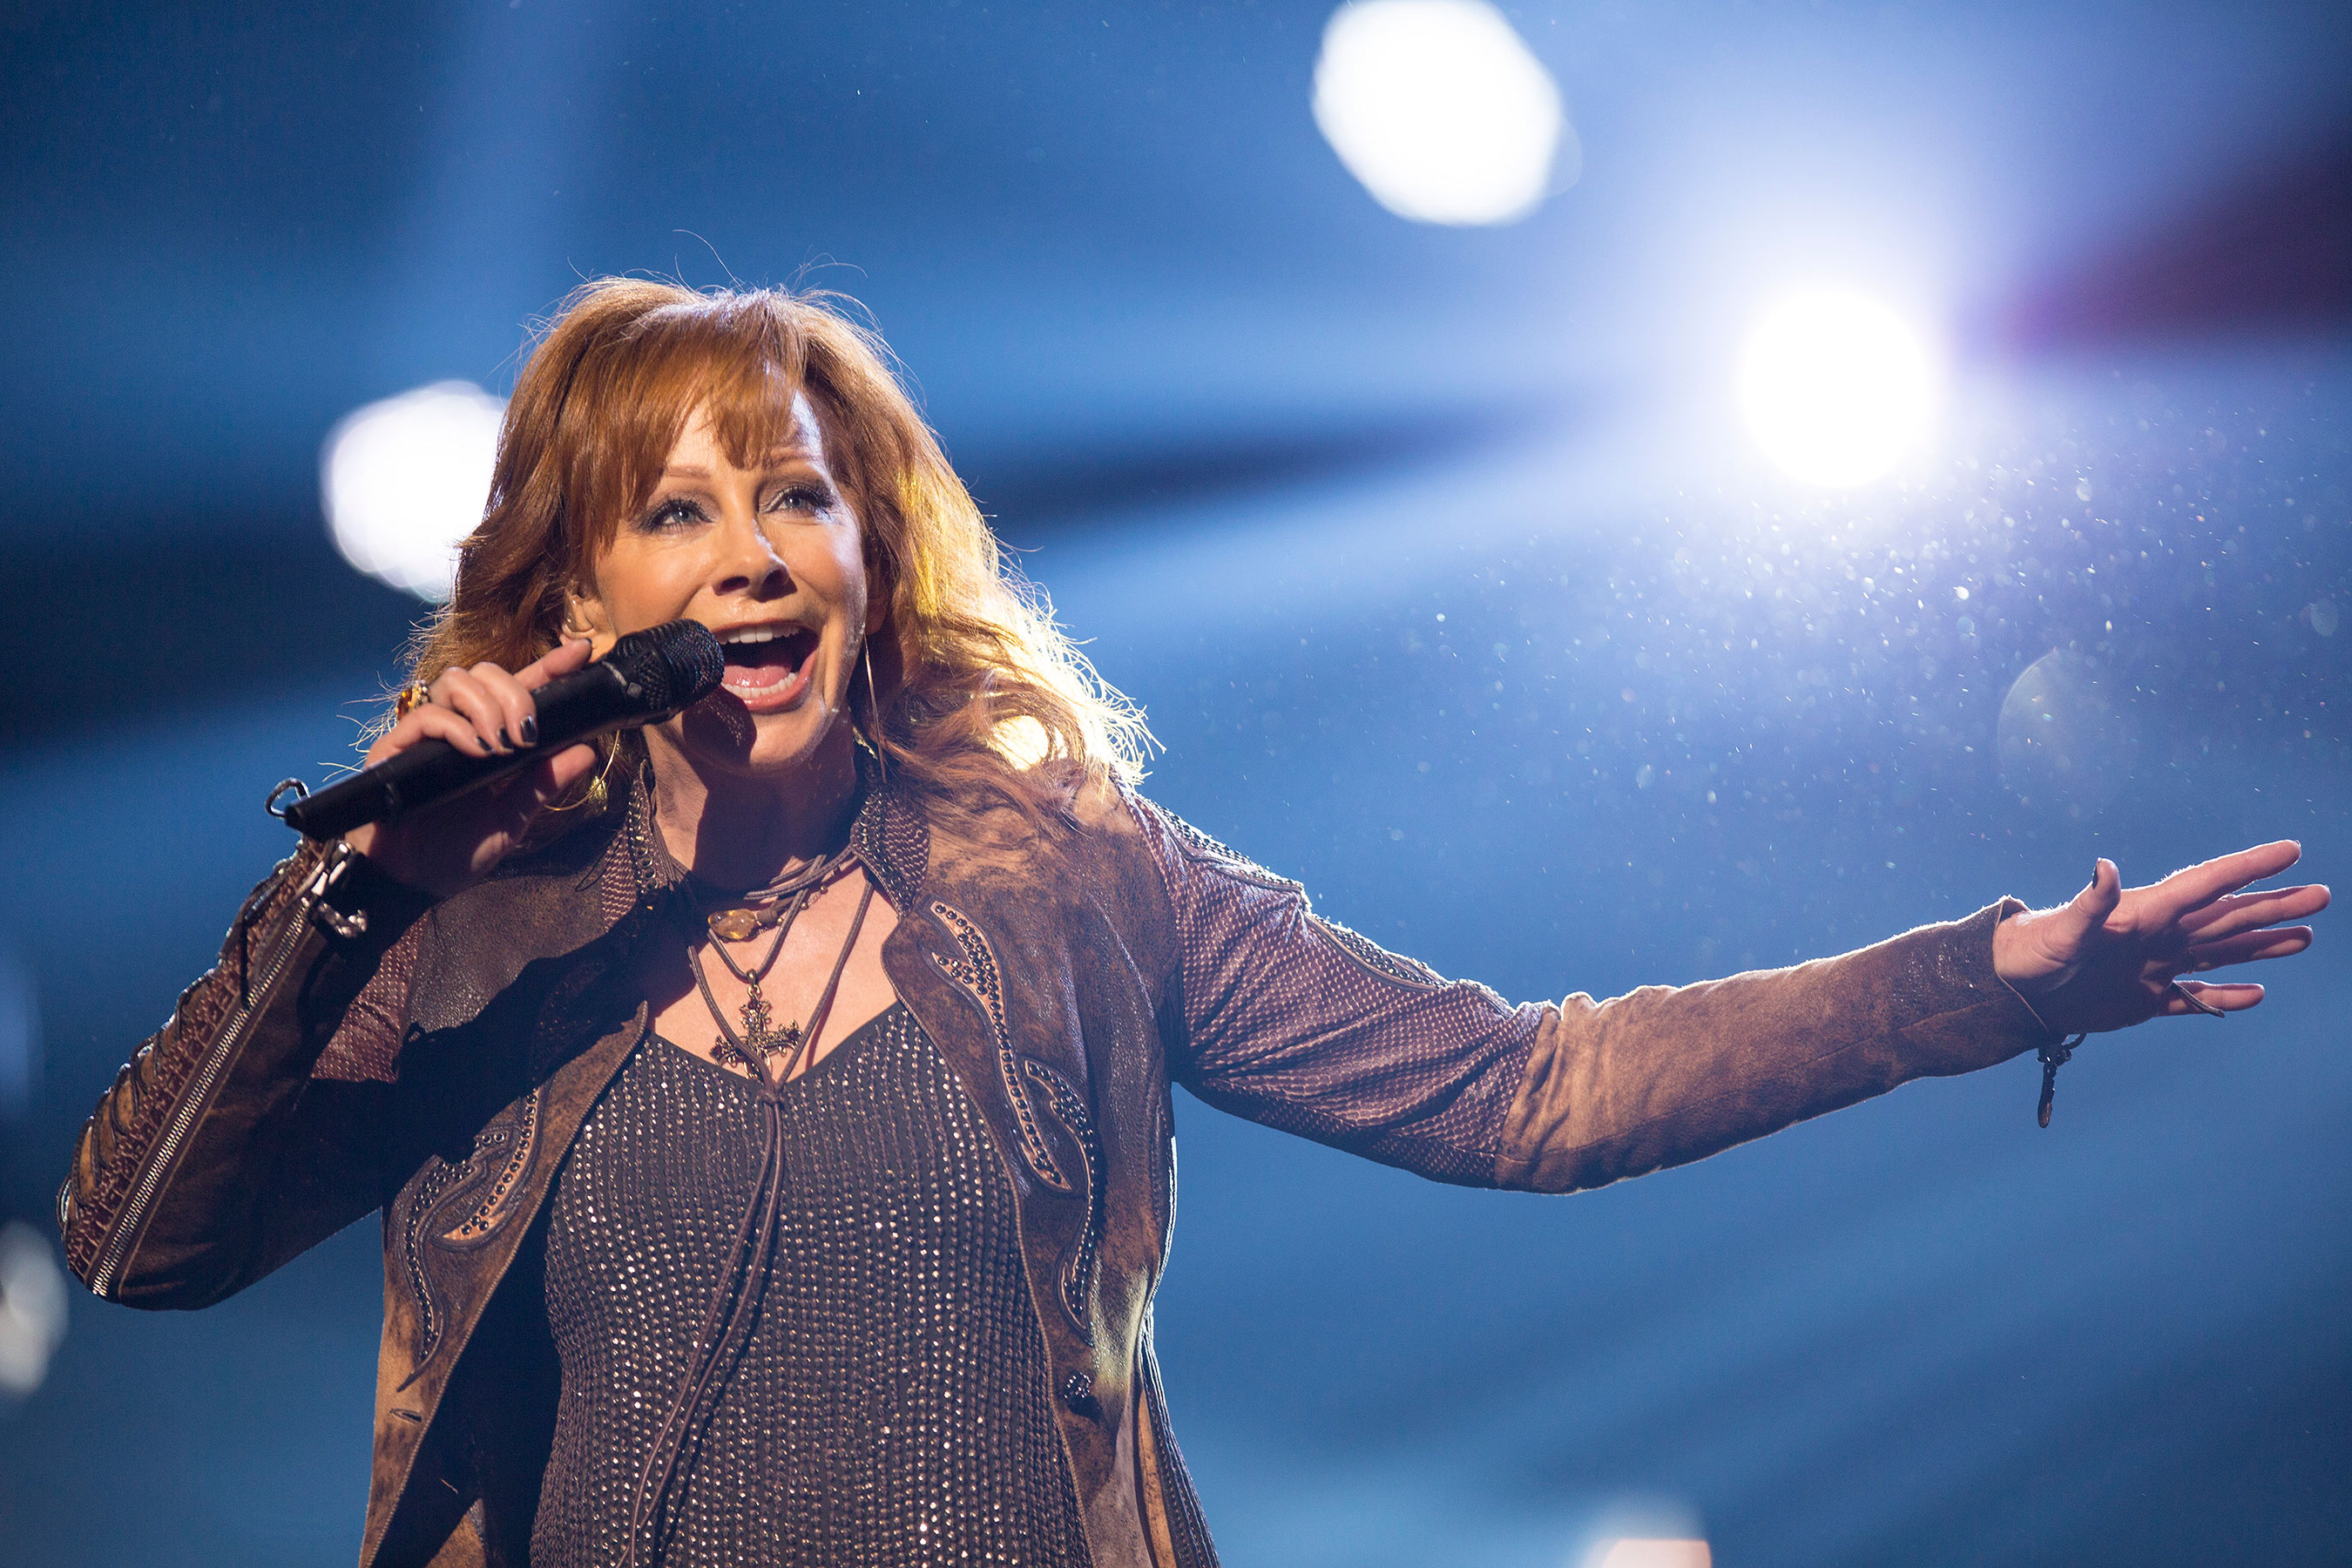 Reba launches her new Las Vegas residency with Brooks & Dunn, REBA, BROOKS & DUNN: Together in Vegas at The Colosseum at Caesars Palace on Wednesday, June 17. Photo credit: Justin McIntosh